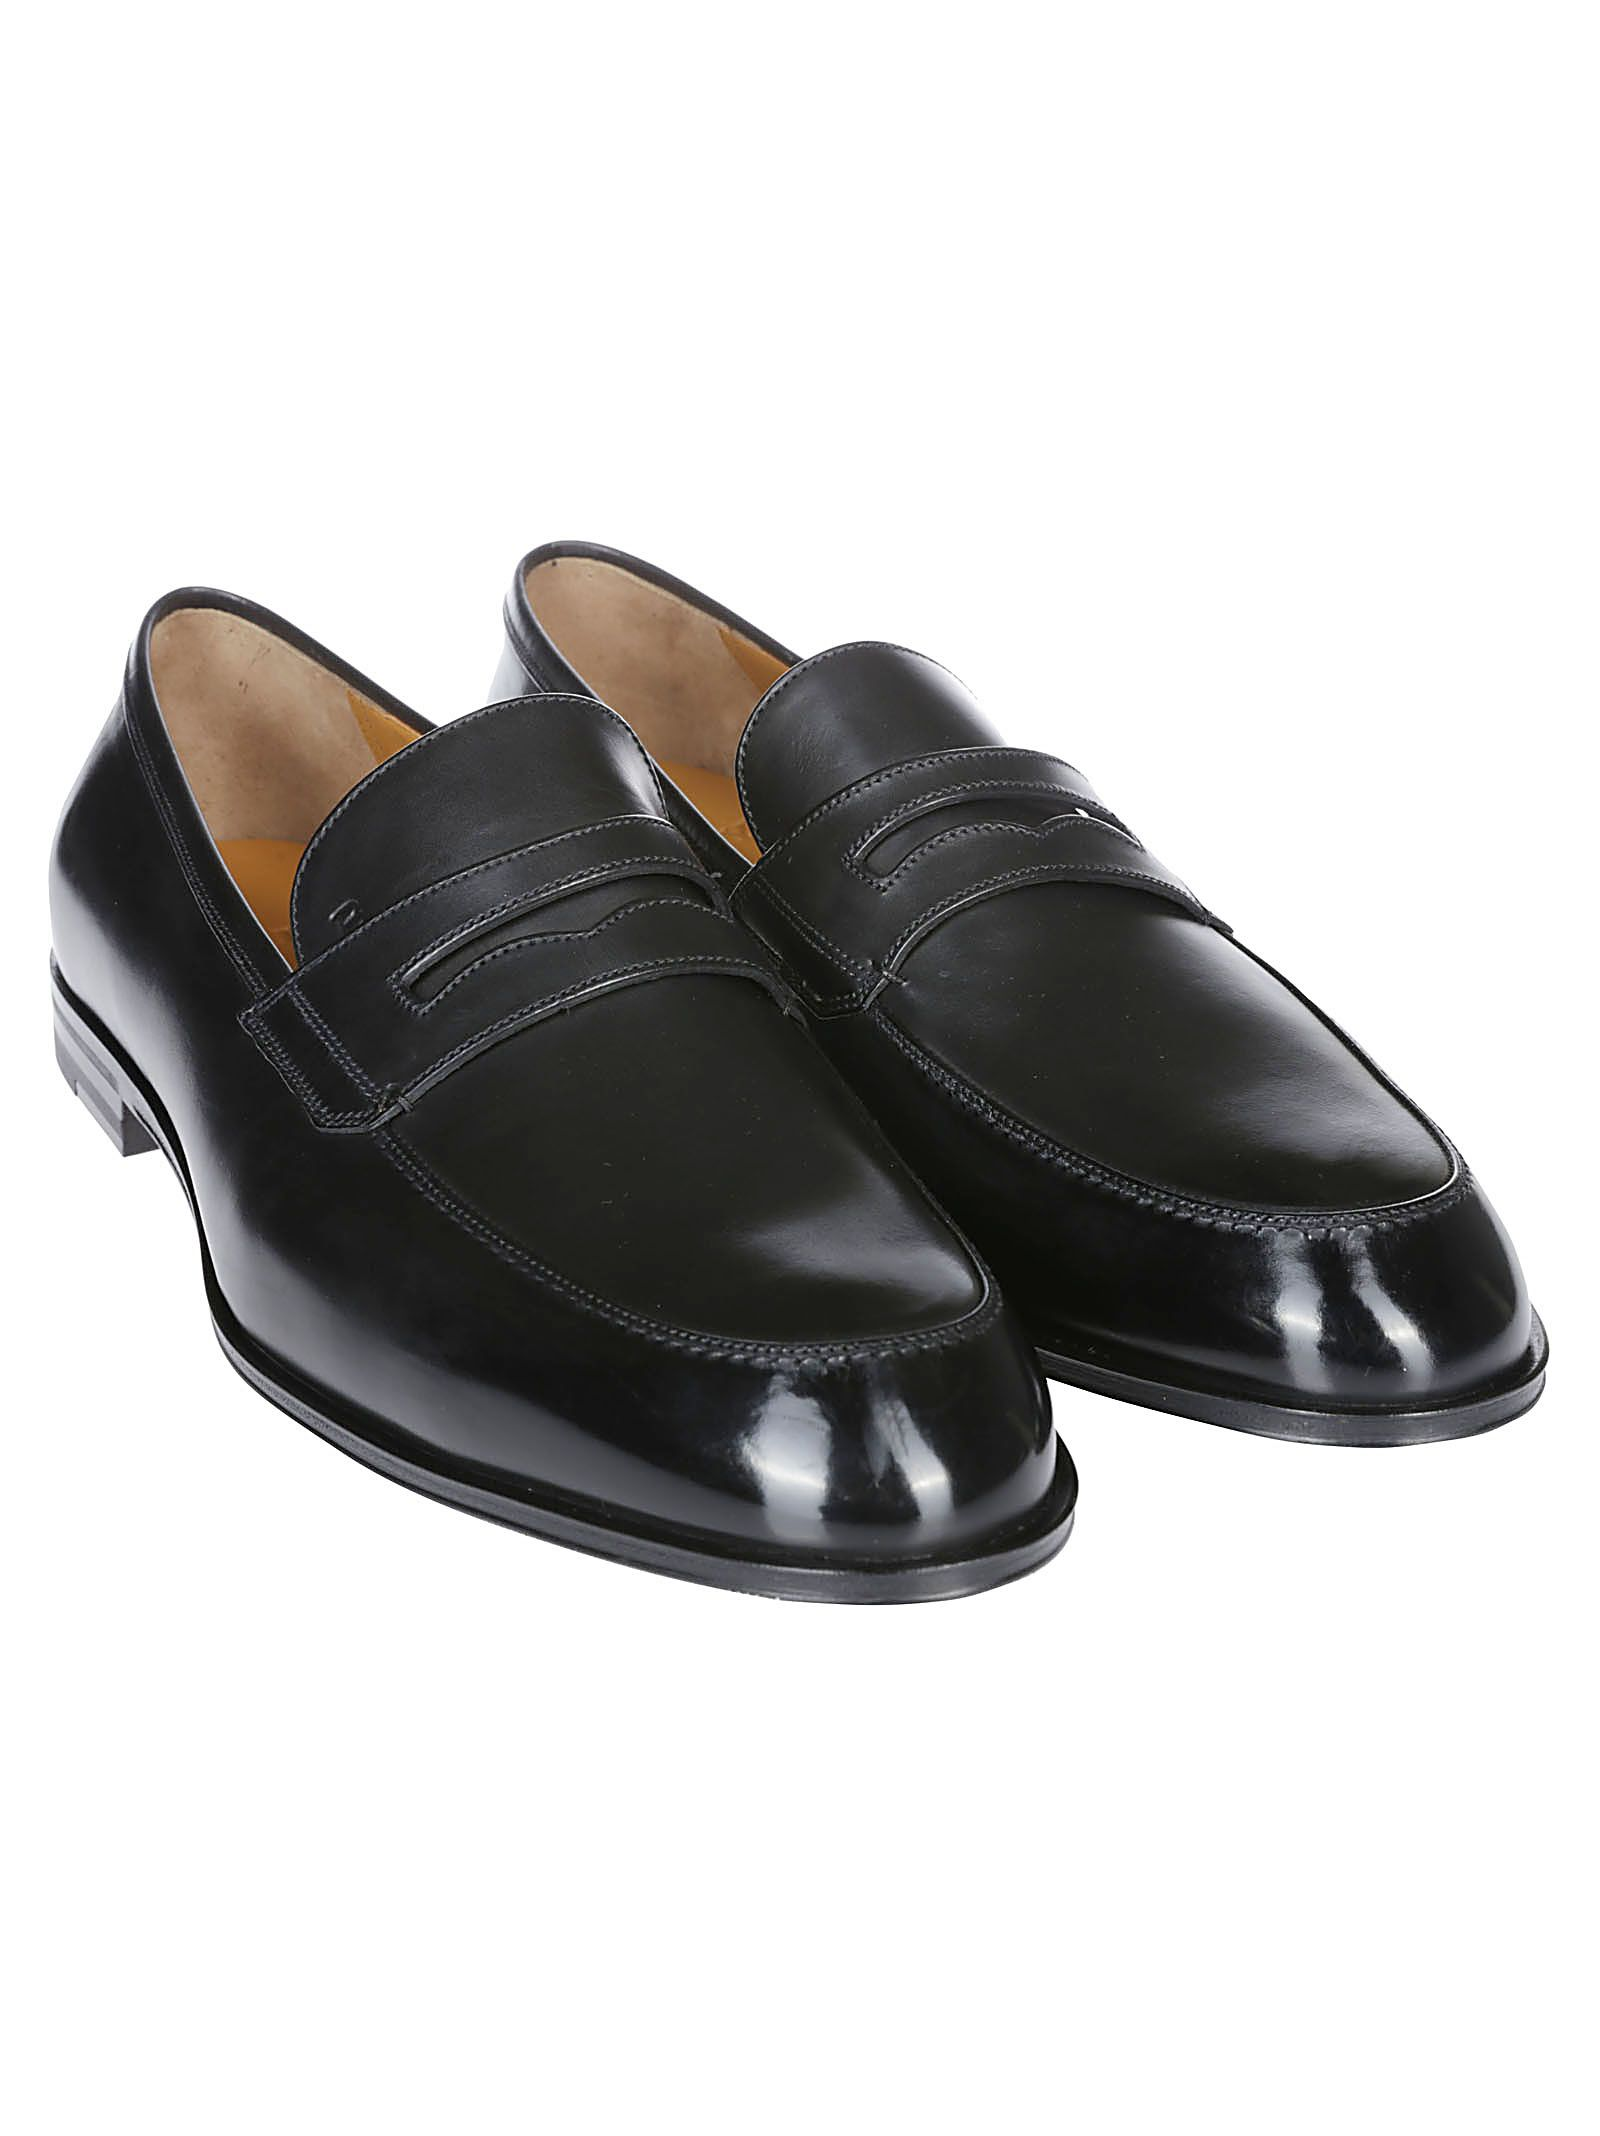 974899903d3 Bally Bally Webb Classic Loafers - Black - 10857267